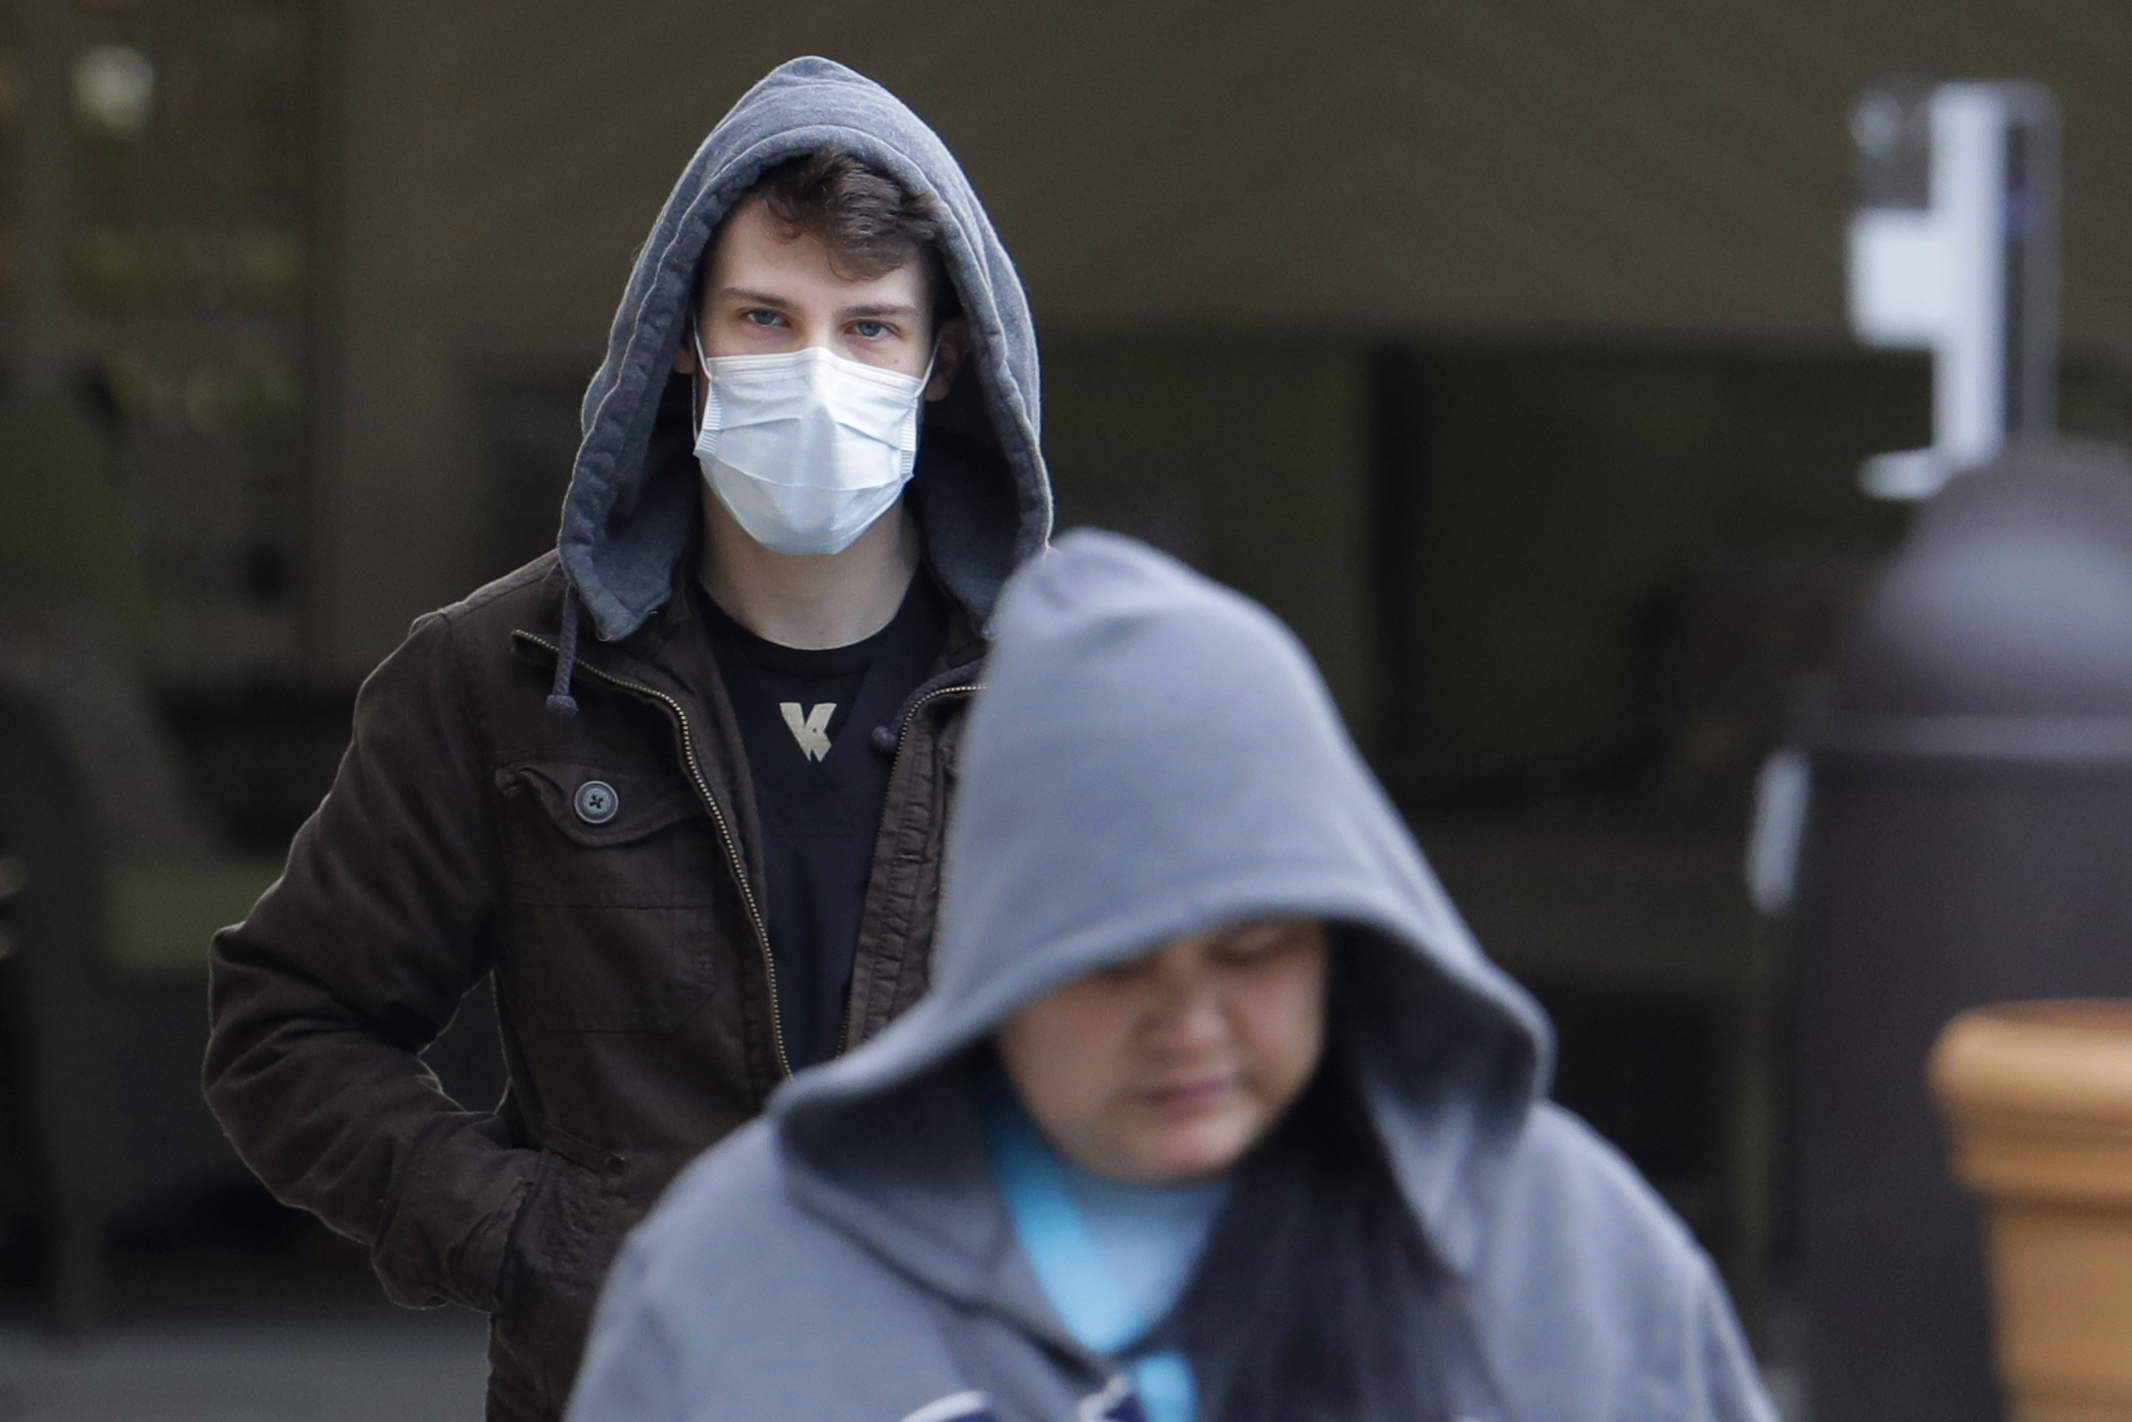 A man wearing a mask walks away from the entrance of the Life Care Center in Kirkland, Wash., near Seattle, Tuesday, March 3, 2020. The facility has been tied to several confirmed cases of the COVID-19 coronavirus. (AP Photo/Ted S. Warren)